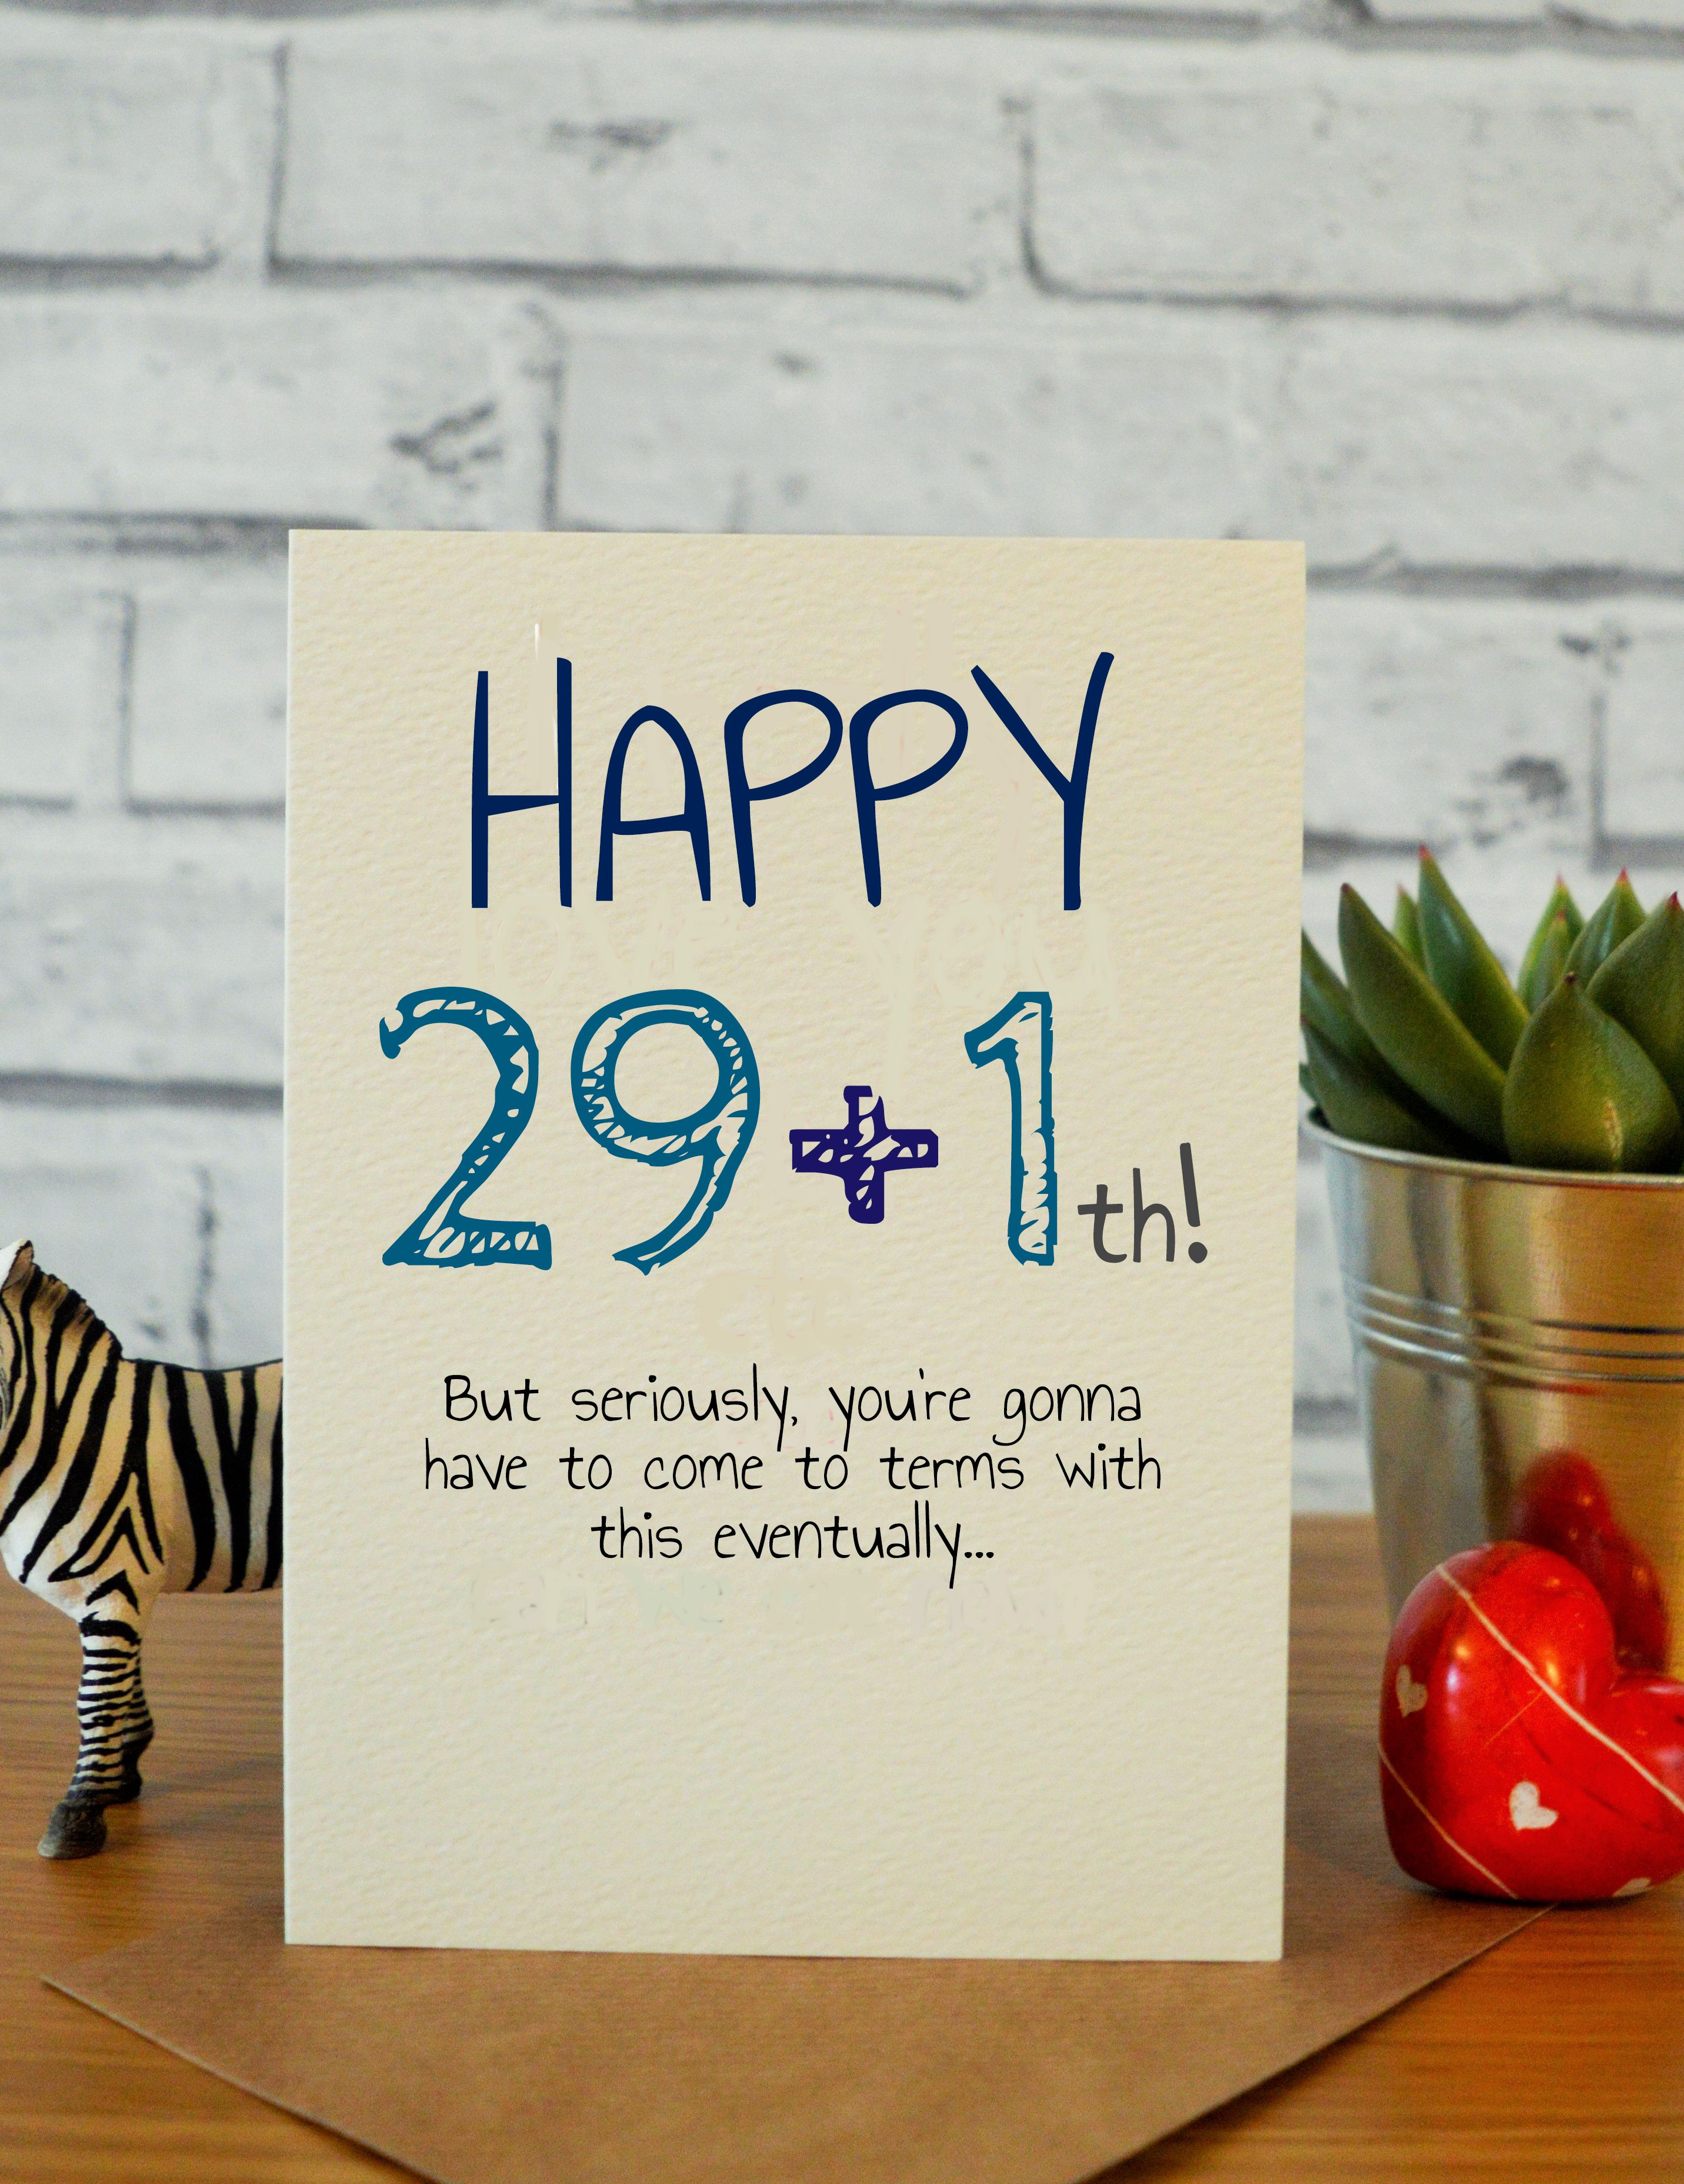 291th birthday cards for him 30th birthday gifts 40th